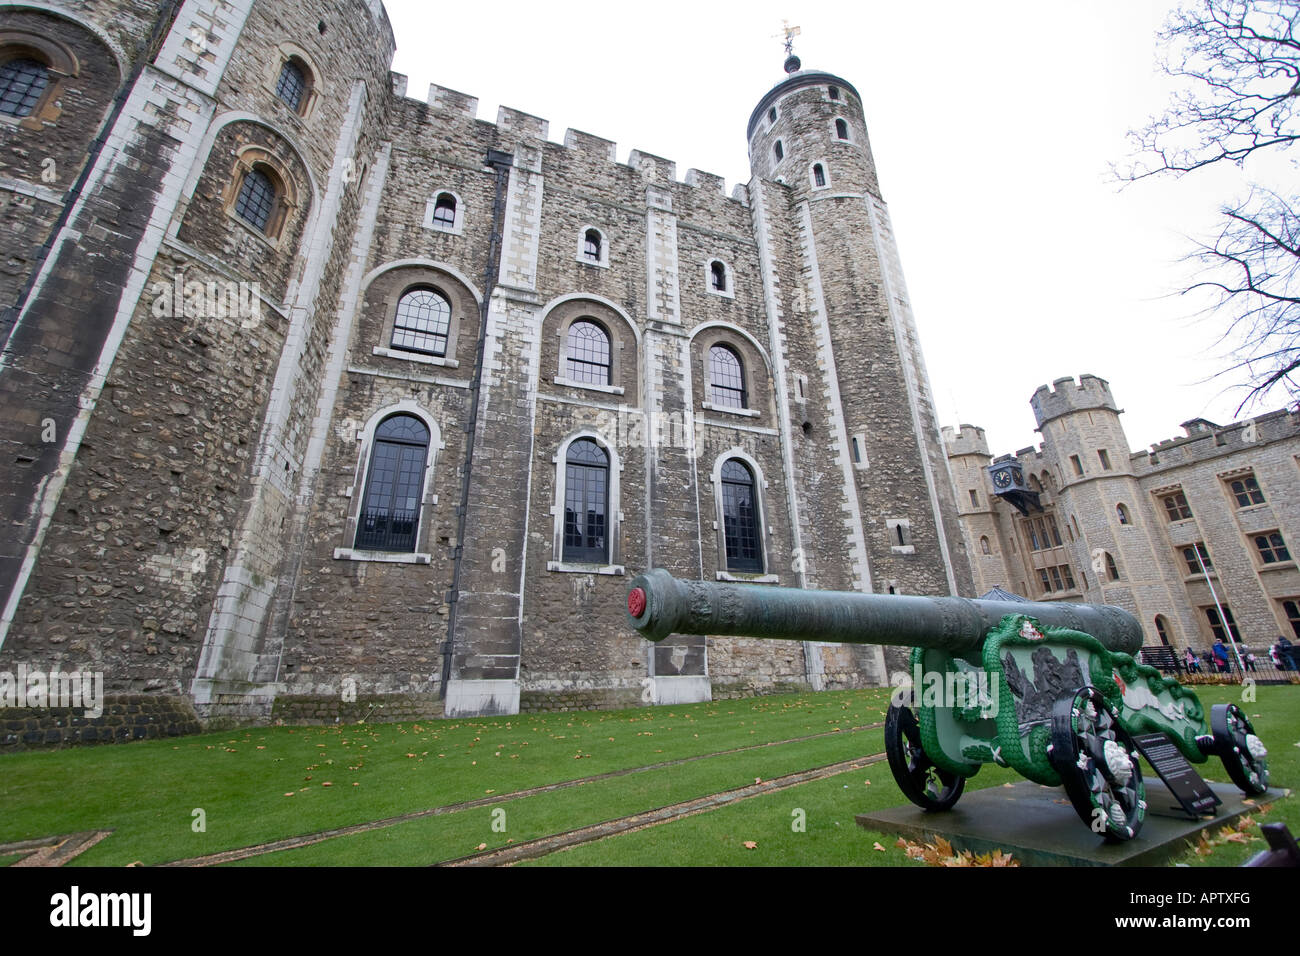 Canon prussien saisi comme un butin de guerre sur l'affichage à la Tour de Londres à London UK Photo Stock